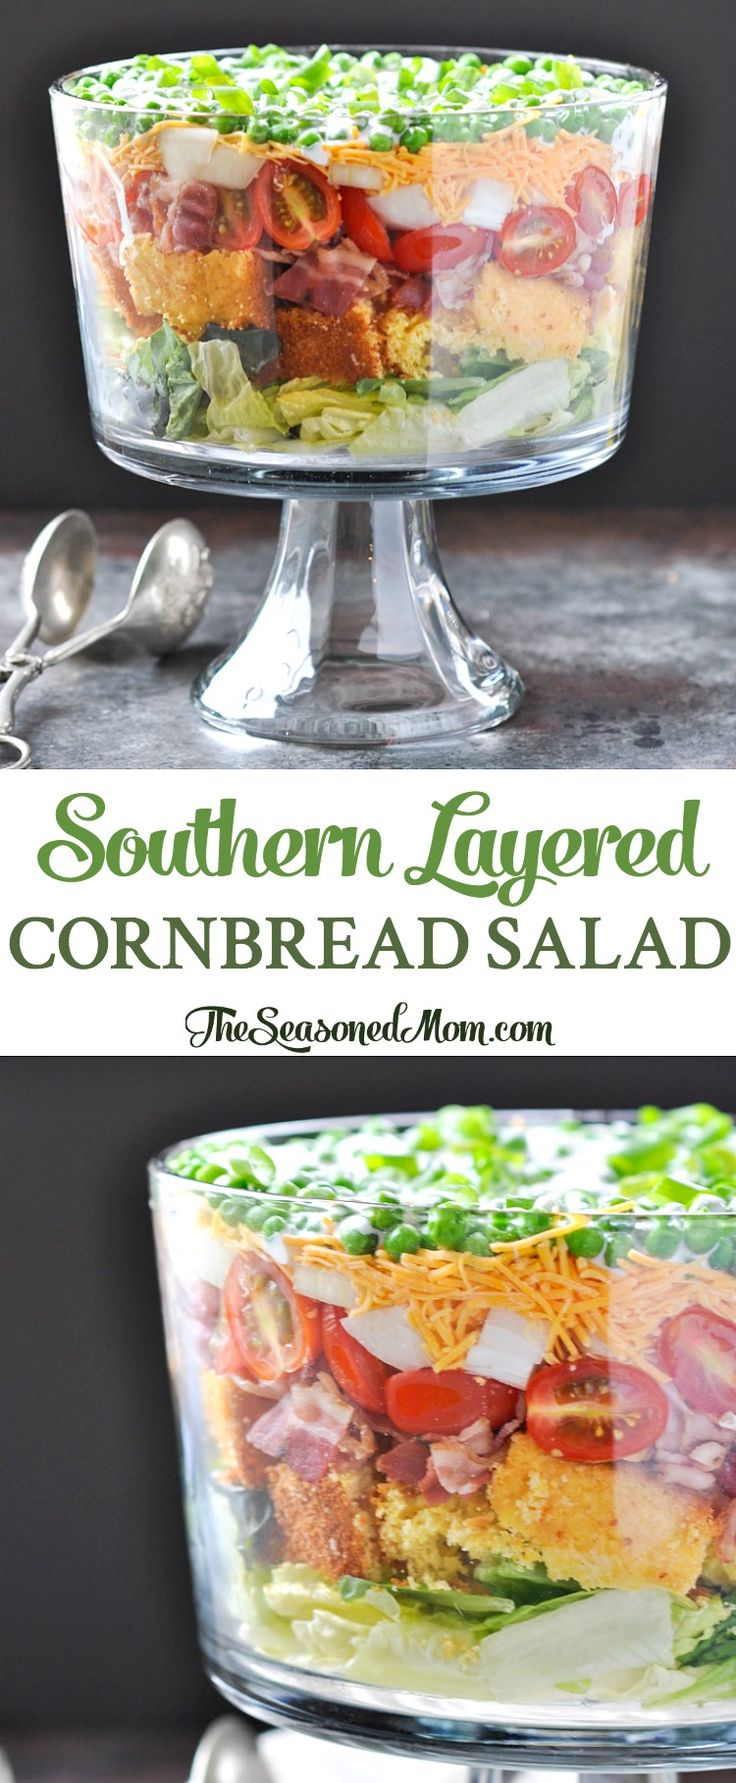 Southern Layered Cornbread Salad | Salad Recipes | Salads | Potluck Recipes | Potluck Dishes | Potluck Ideas | Side Dishes | Picnic Food | Picnic Ideas | Dinner | Dinner Ideas | Easy Dinner Recipes | Bacon